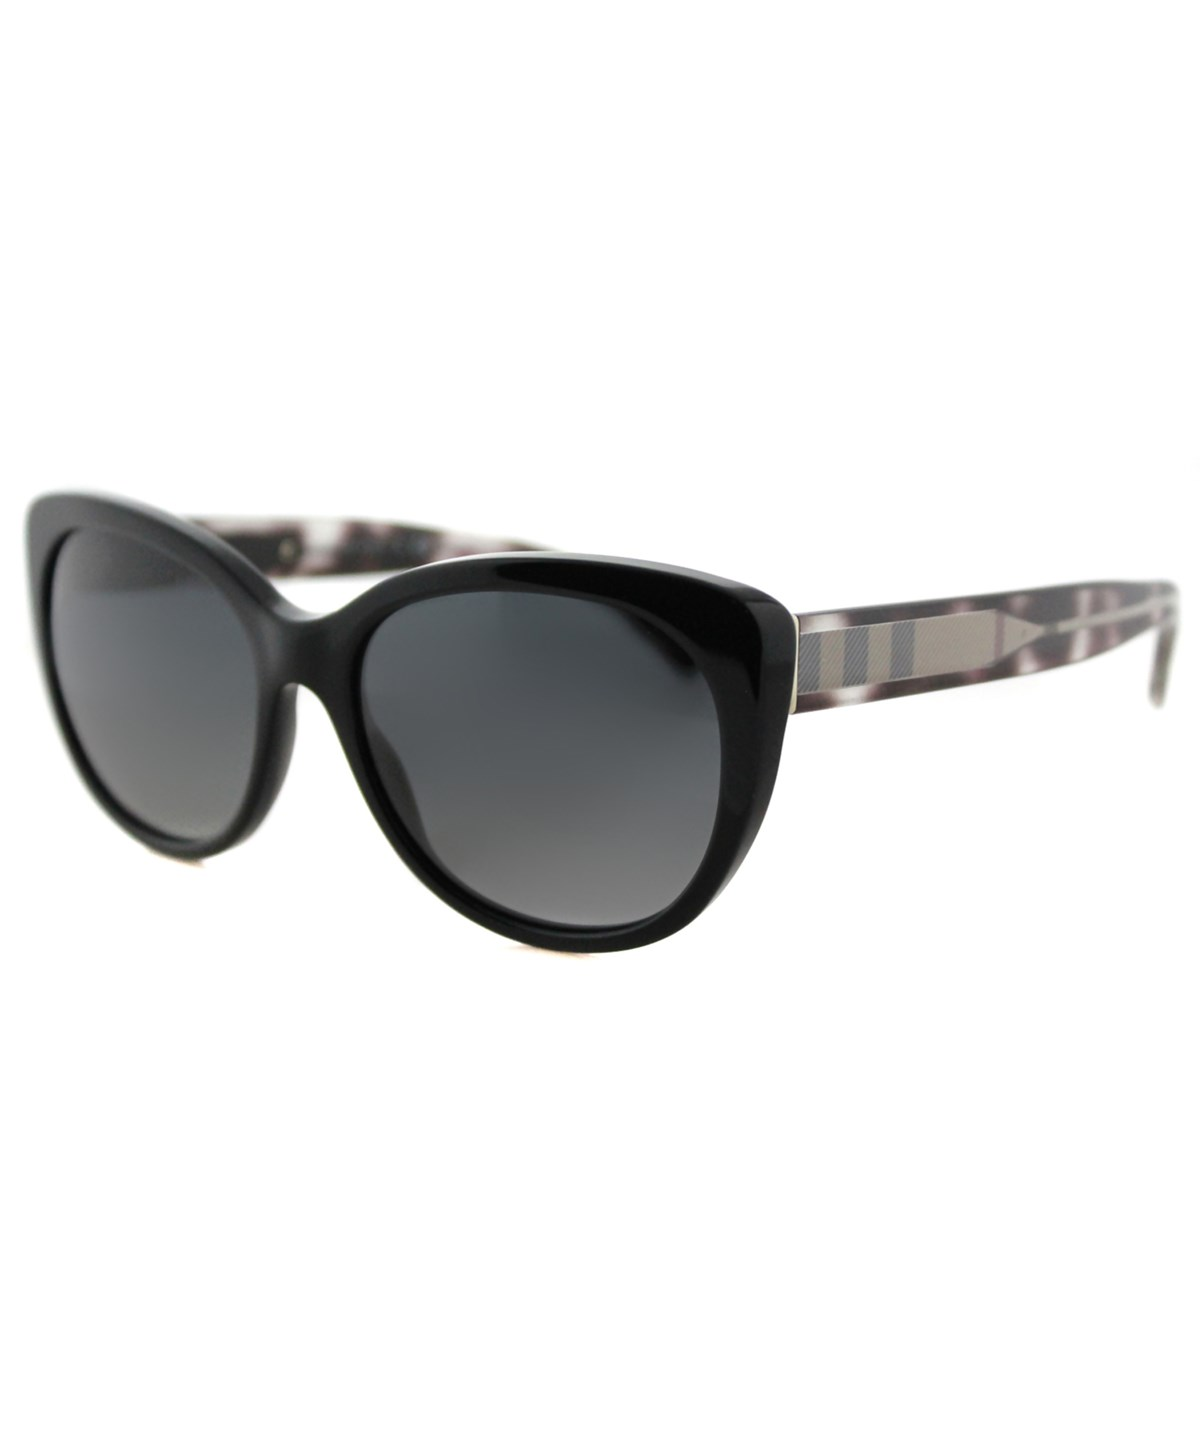 Burberry Cat-eye Plastic Sunglasses In Black